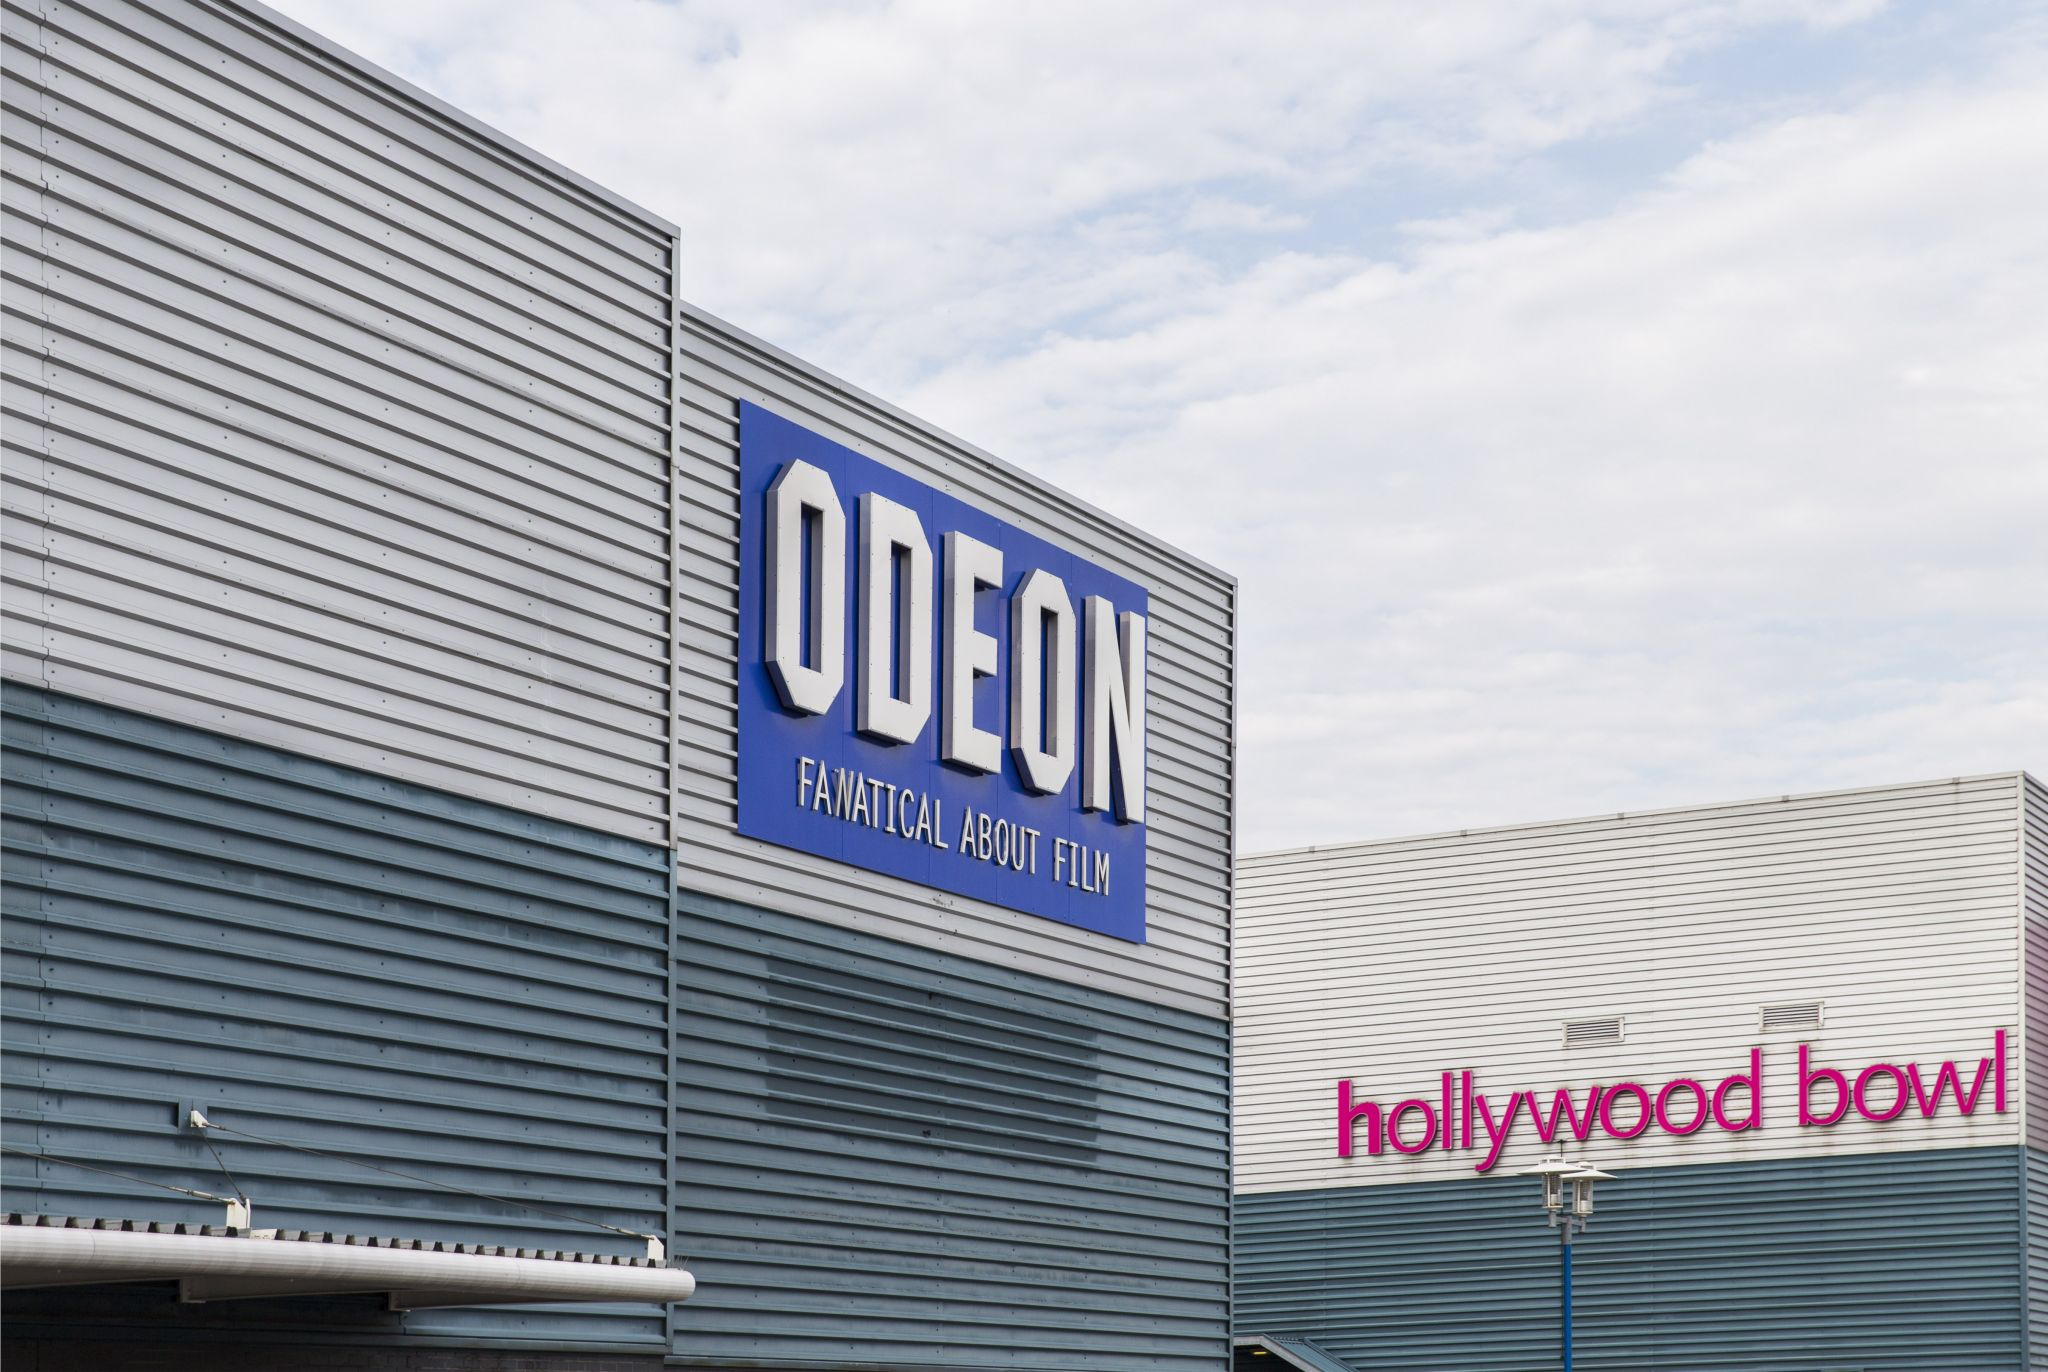 Odeon cinema building sign